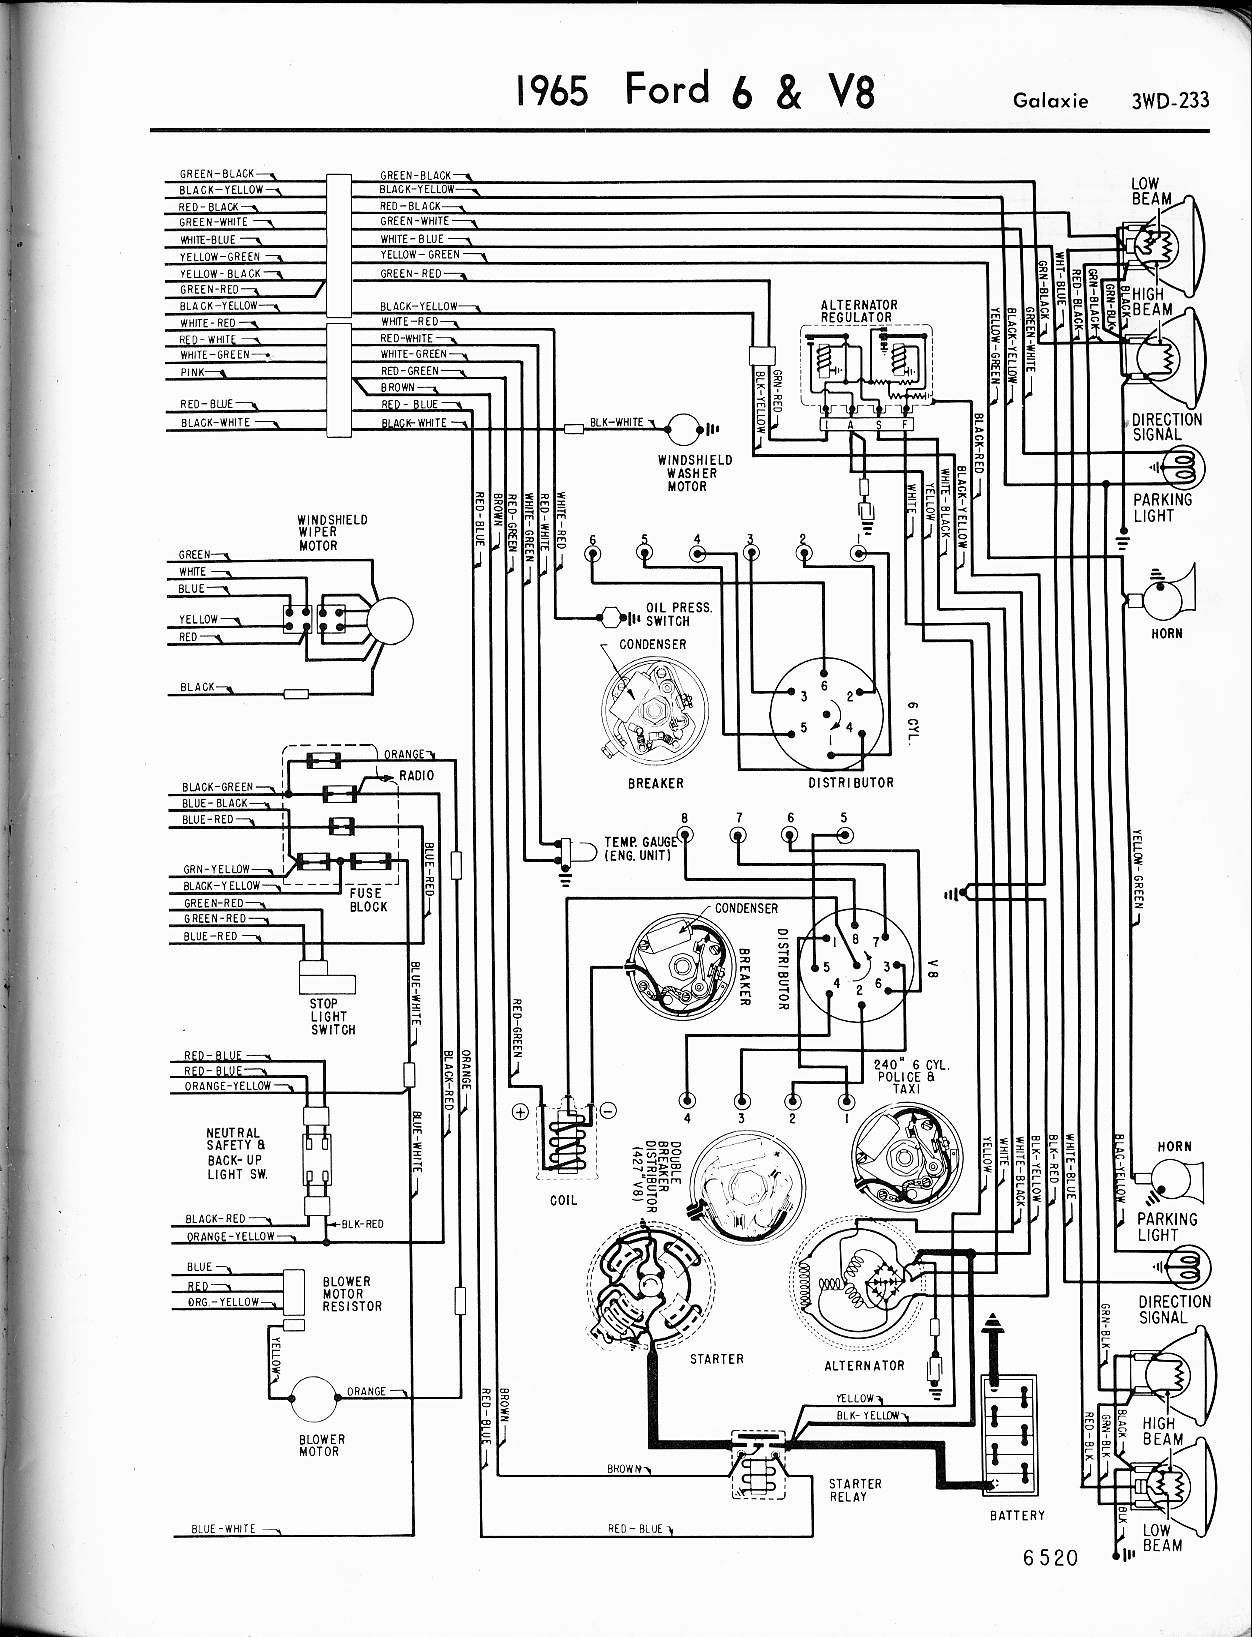 Ford 4 6 V8 Engine Diagram My Wiring Free Diagrams Automotive Galaxie 1965